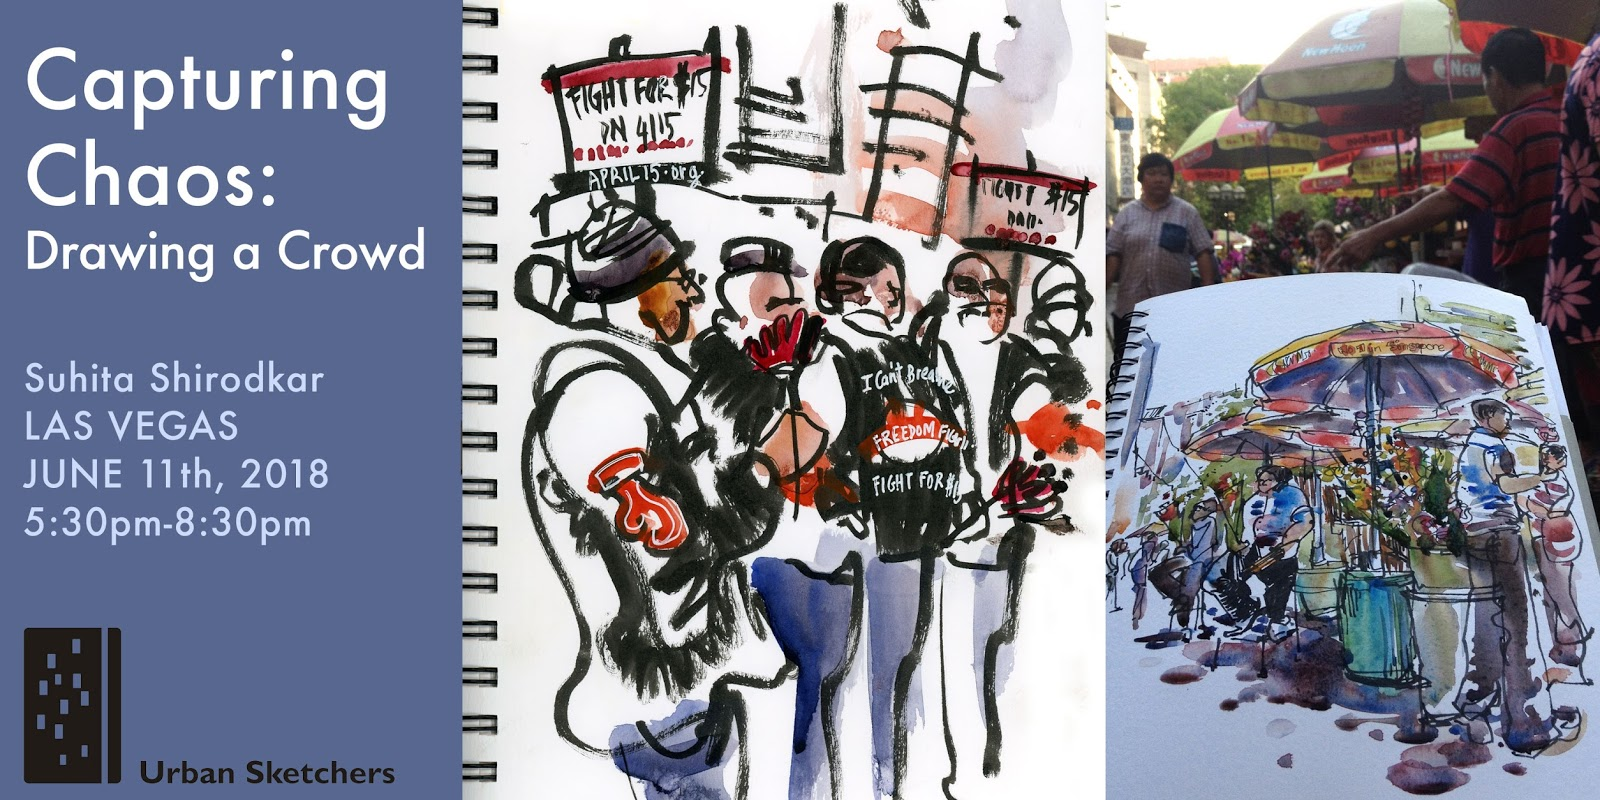 Capturing Chaos: Drawing a Crowd | Urban Sketchers